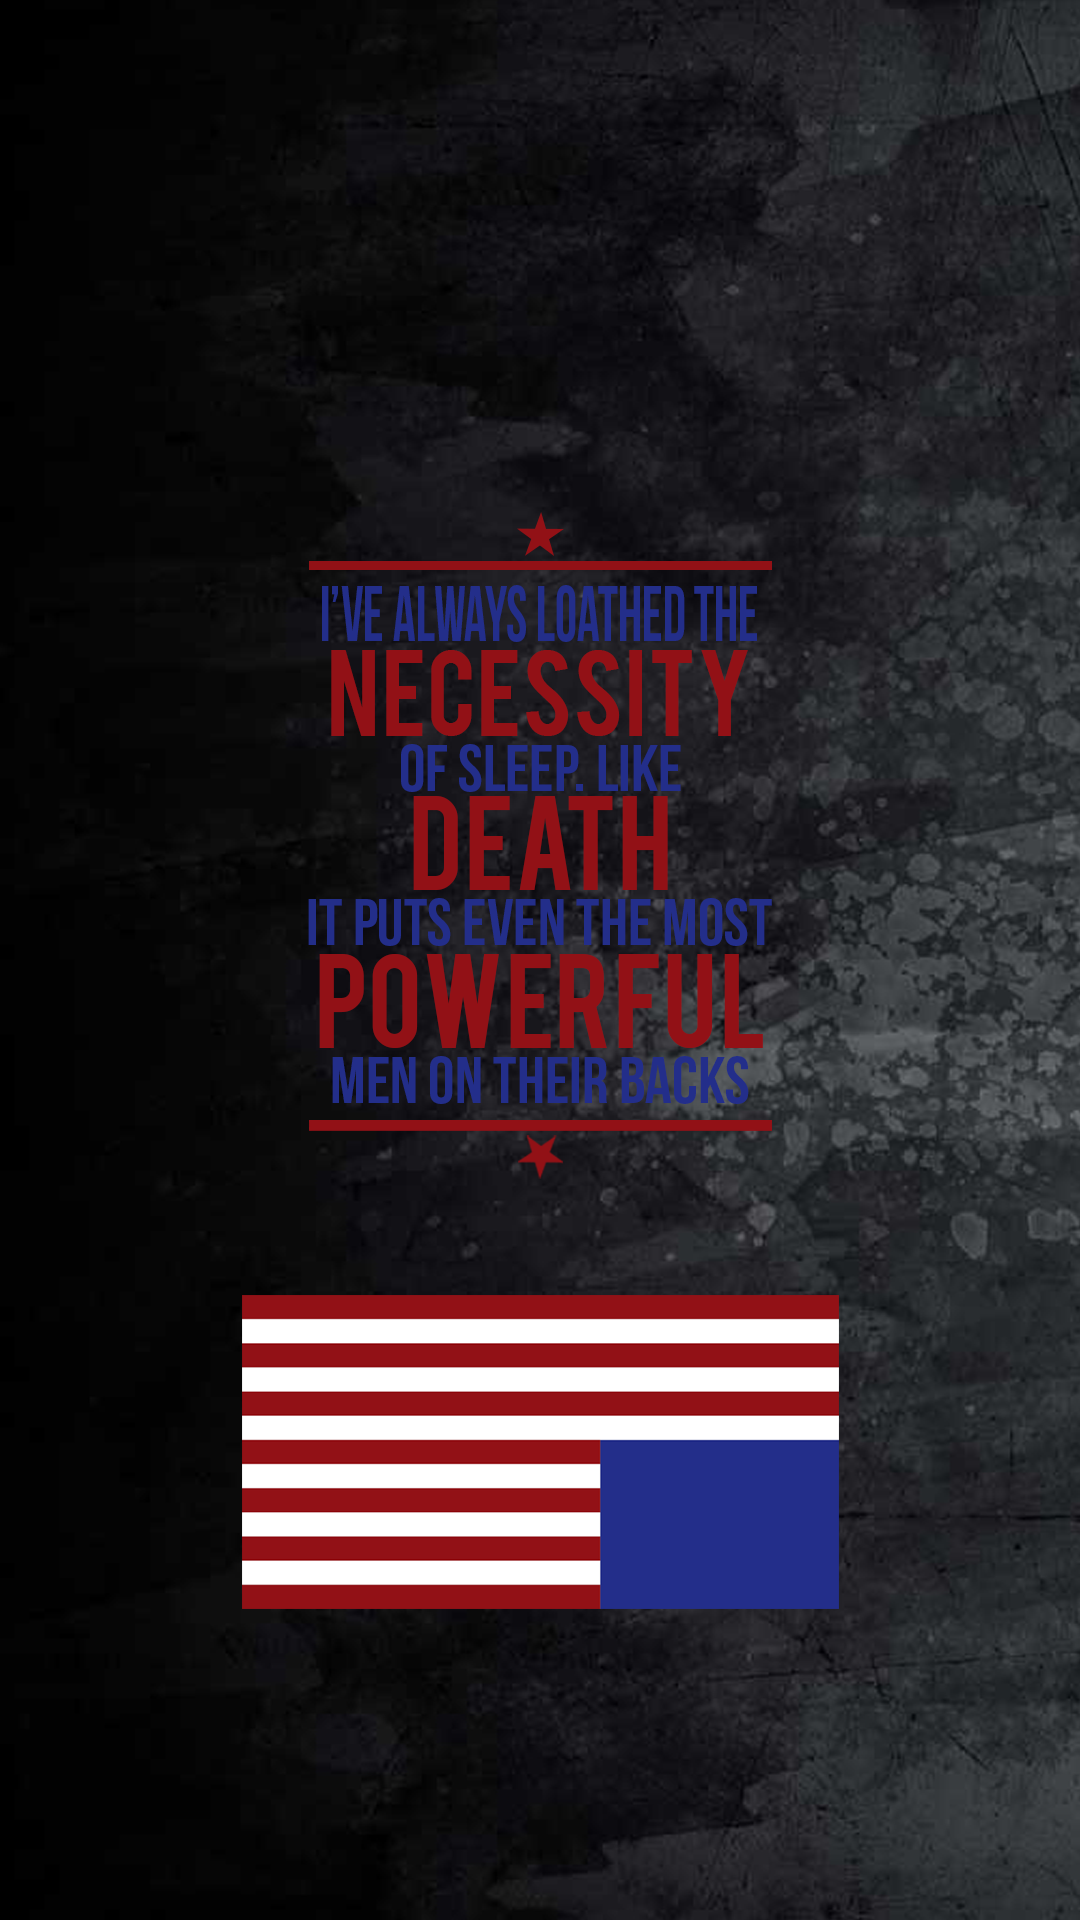 house of cards quote with an american flag wallpaper background